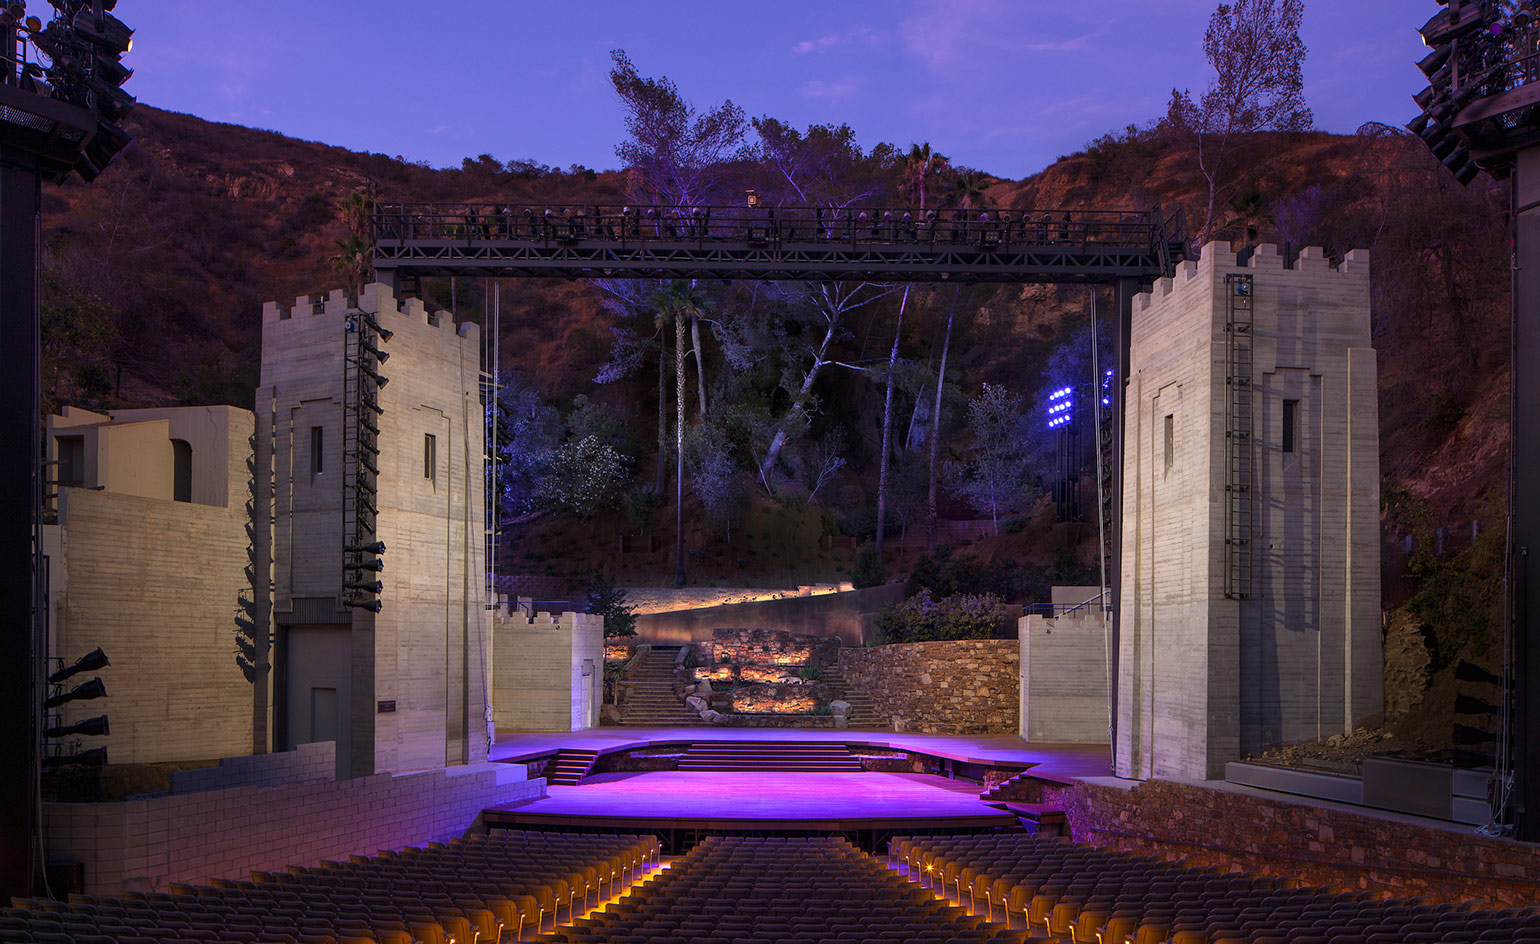 The new amphitheatre stage at night with the natural backdrop